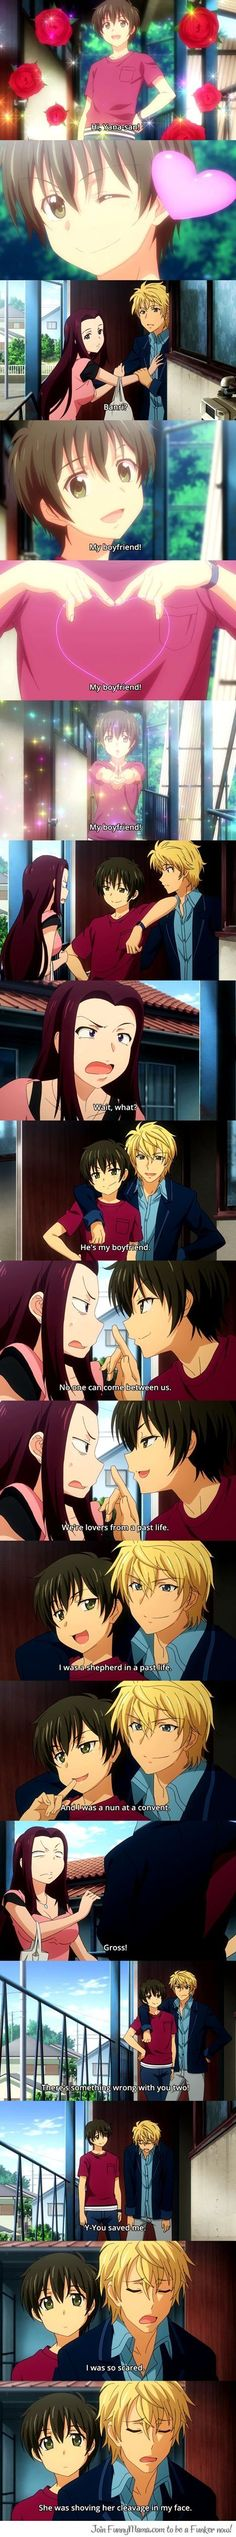 Puhahahaha!! What anime is this???? I need to see this like yesterday! I have physically died!! So funny :'D: